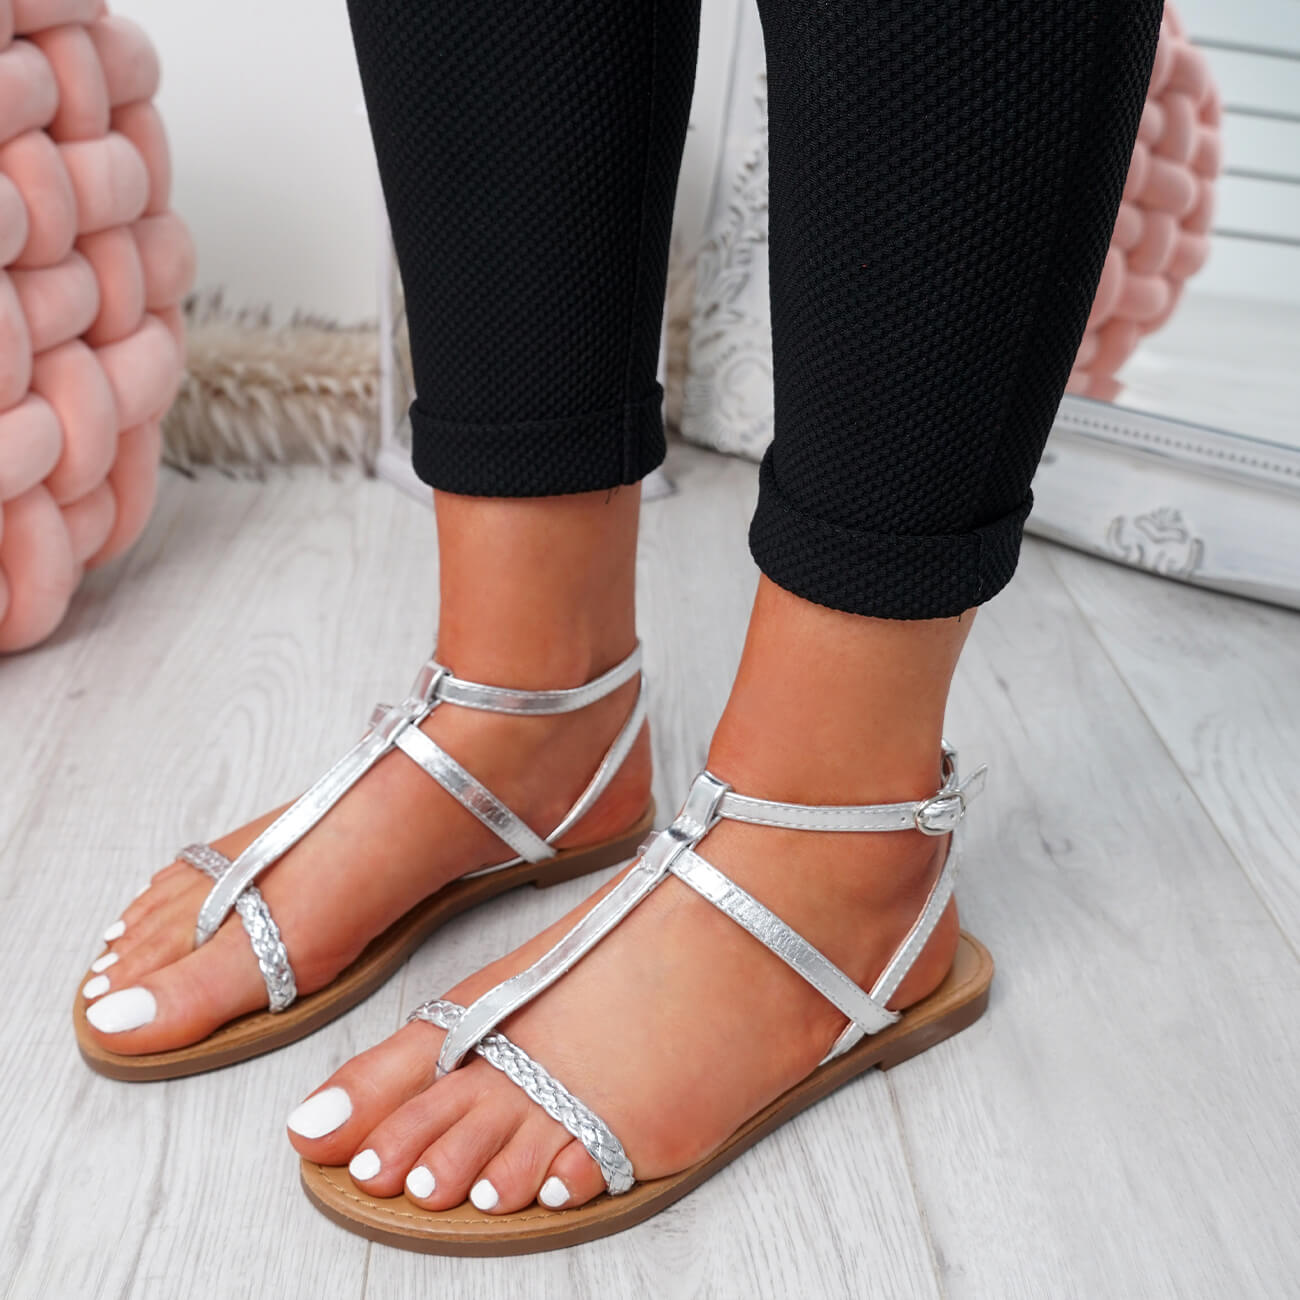 WOMENS-LADIES-T-STRAP-FLAT-SANDALS-BUCKLE-CASUAL-SUMMER-SHOES-SIZE-UK thumbnail 28